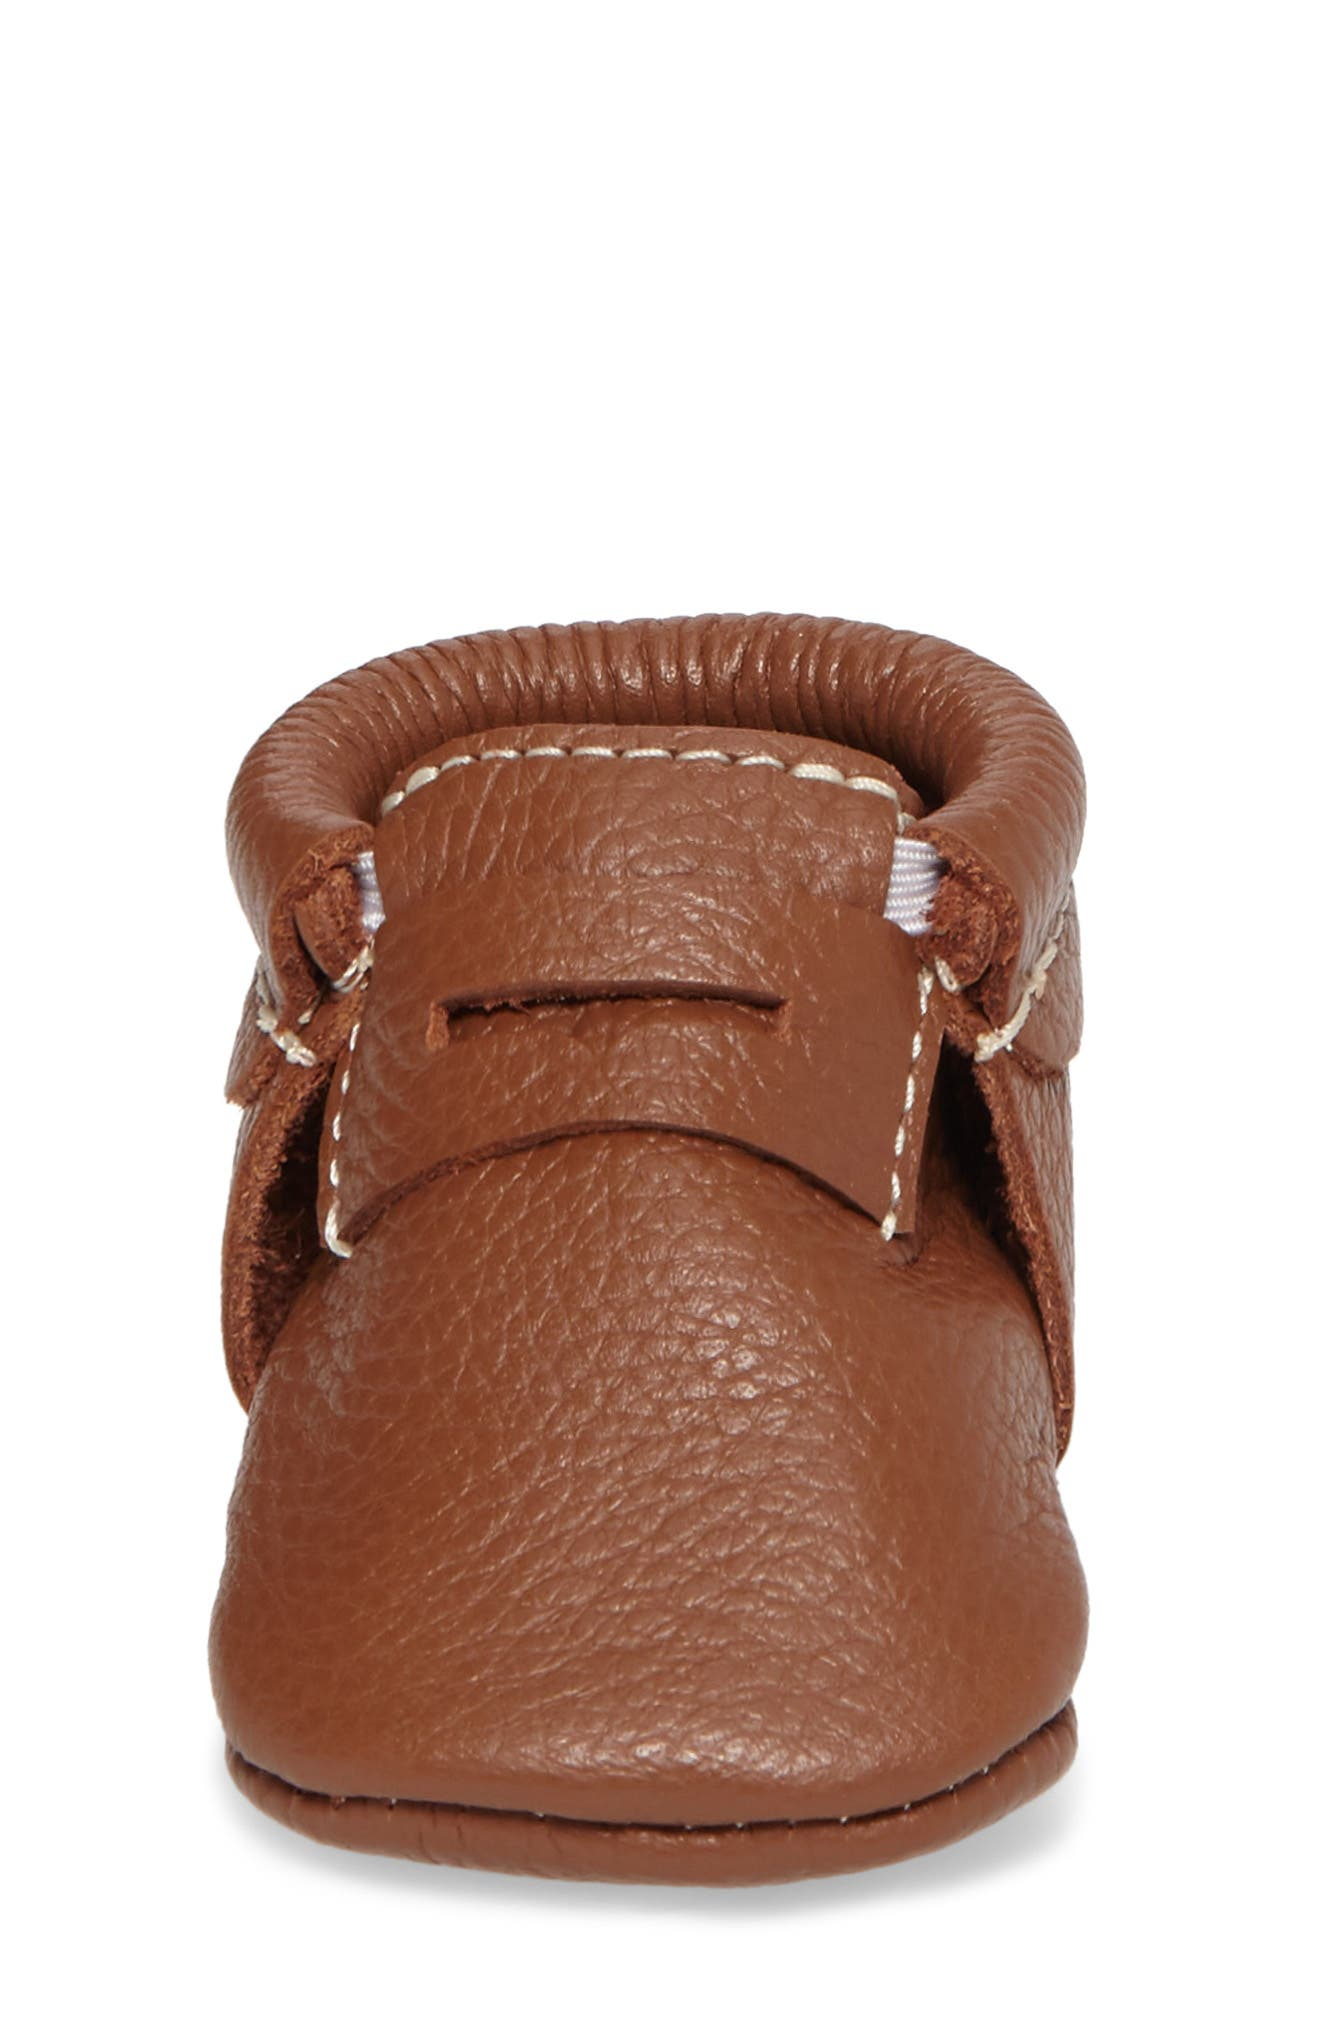 Penny Loafer Crib Shoe,                             Alternate thumbnail 4, color,                             Cognac